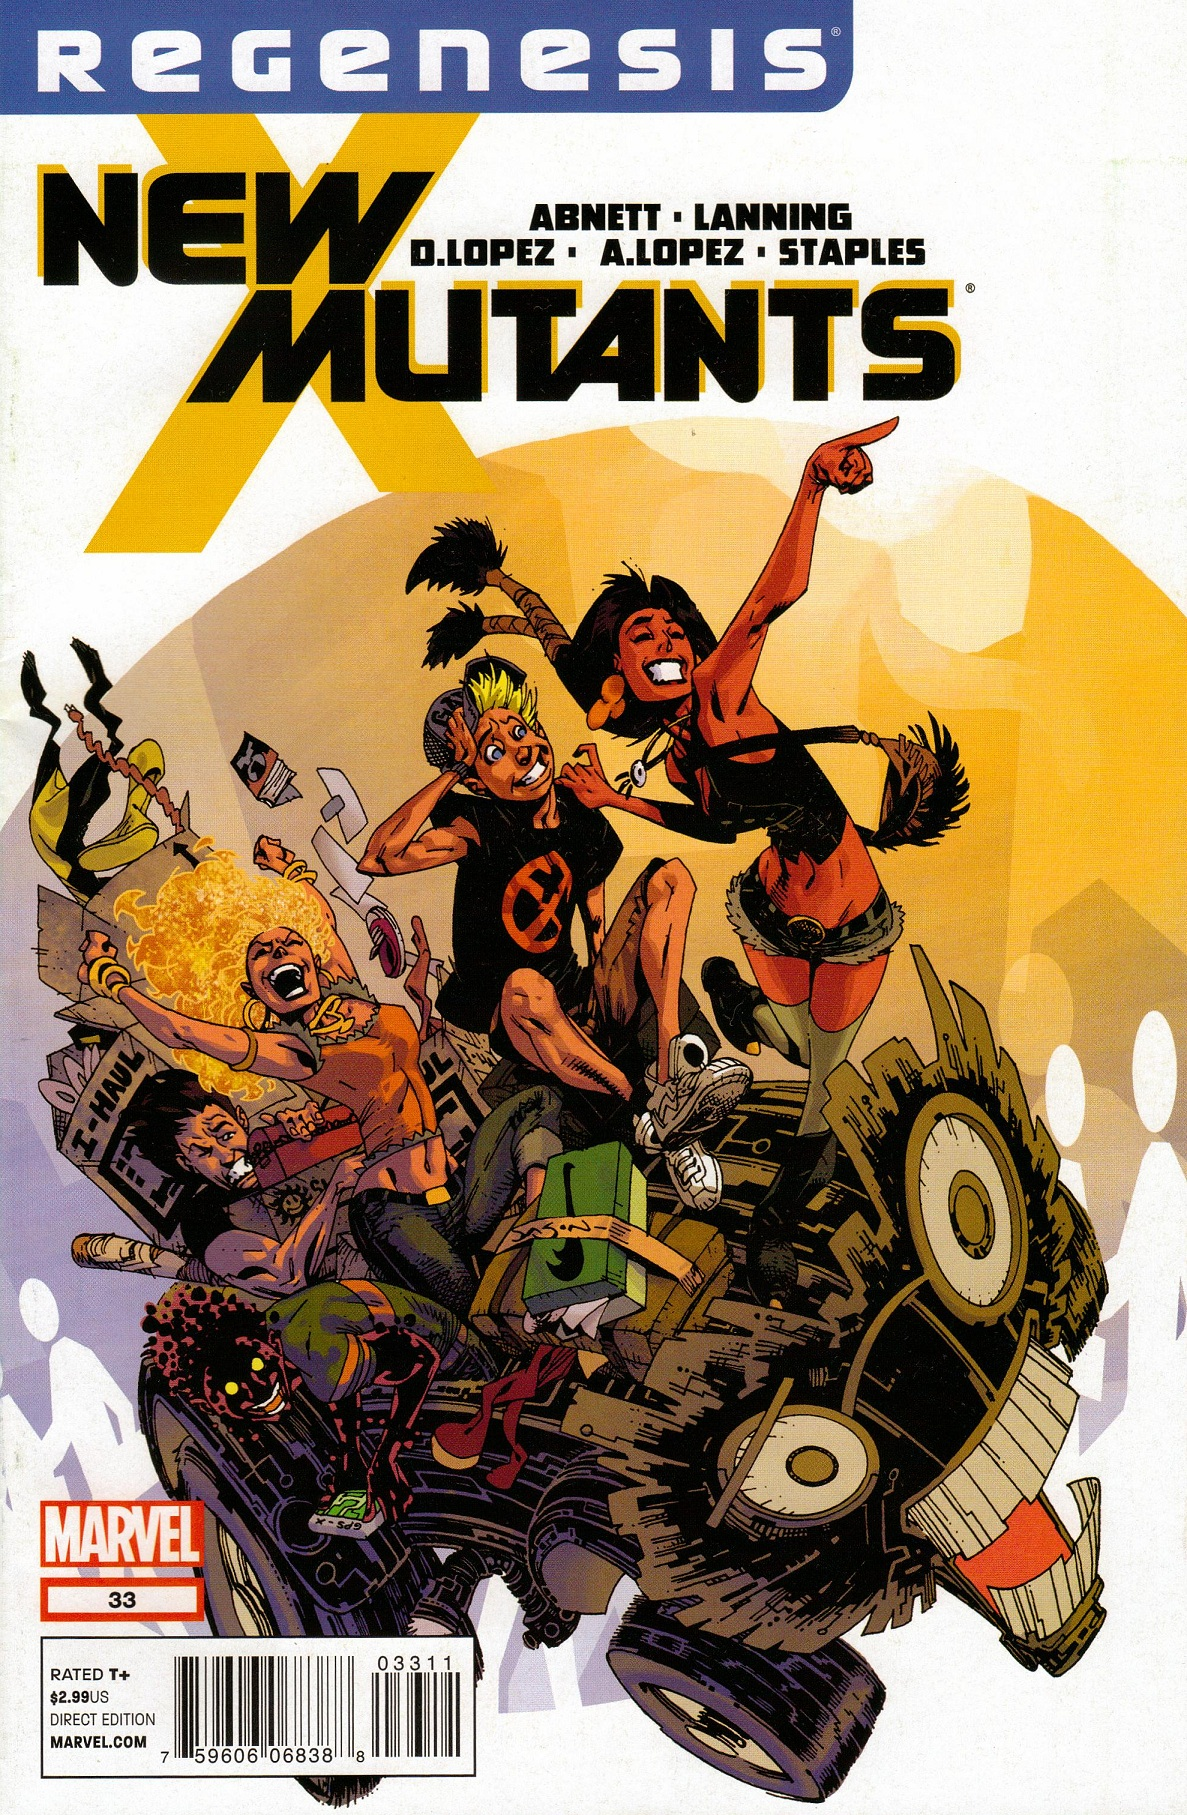 Nice Images Collection: The New Mutants Desktop Wallpapers